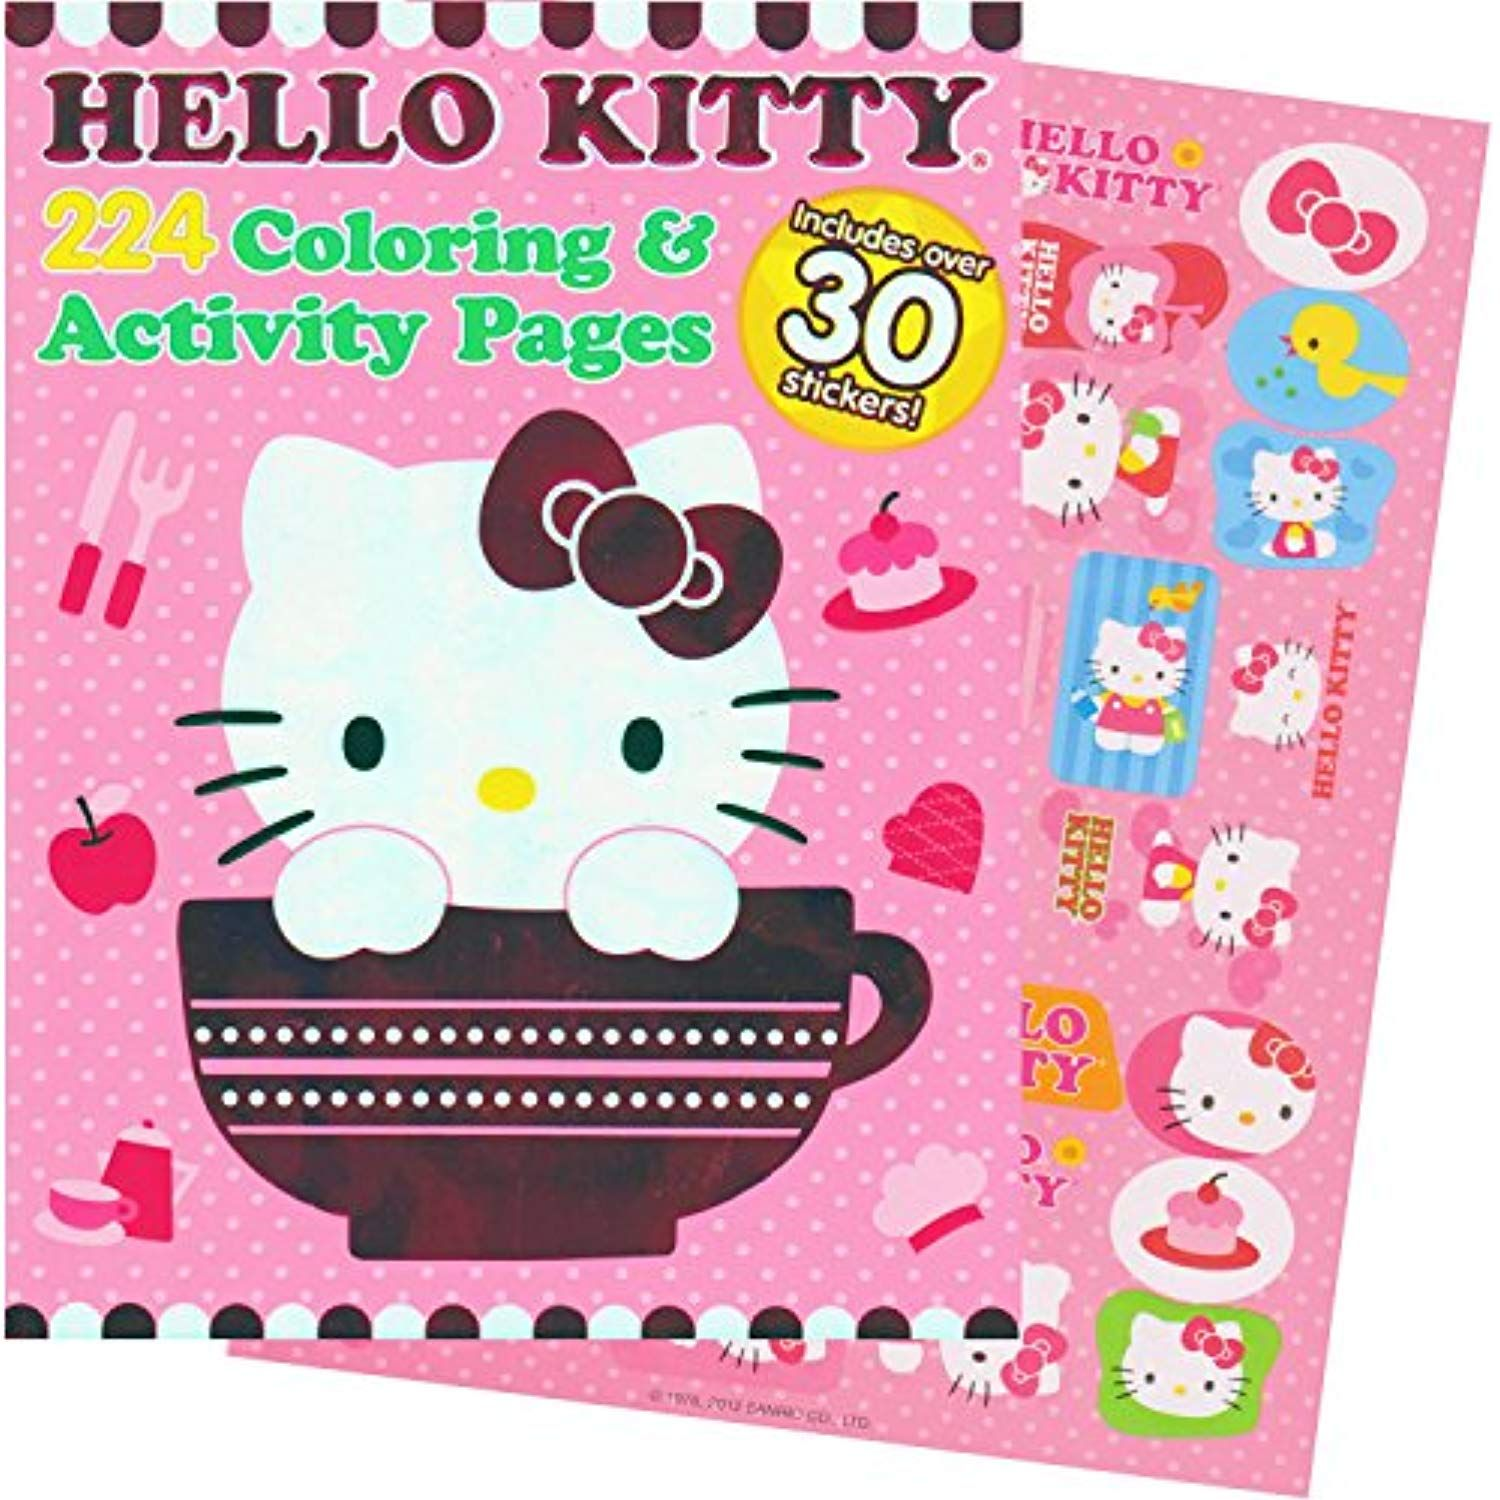 Hello Kitty Coloring And Activity Book With Stickers 224 Pages Click Image To Review More Details This Hello Kitty Coloring Hello Kitty Color Activities